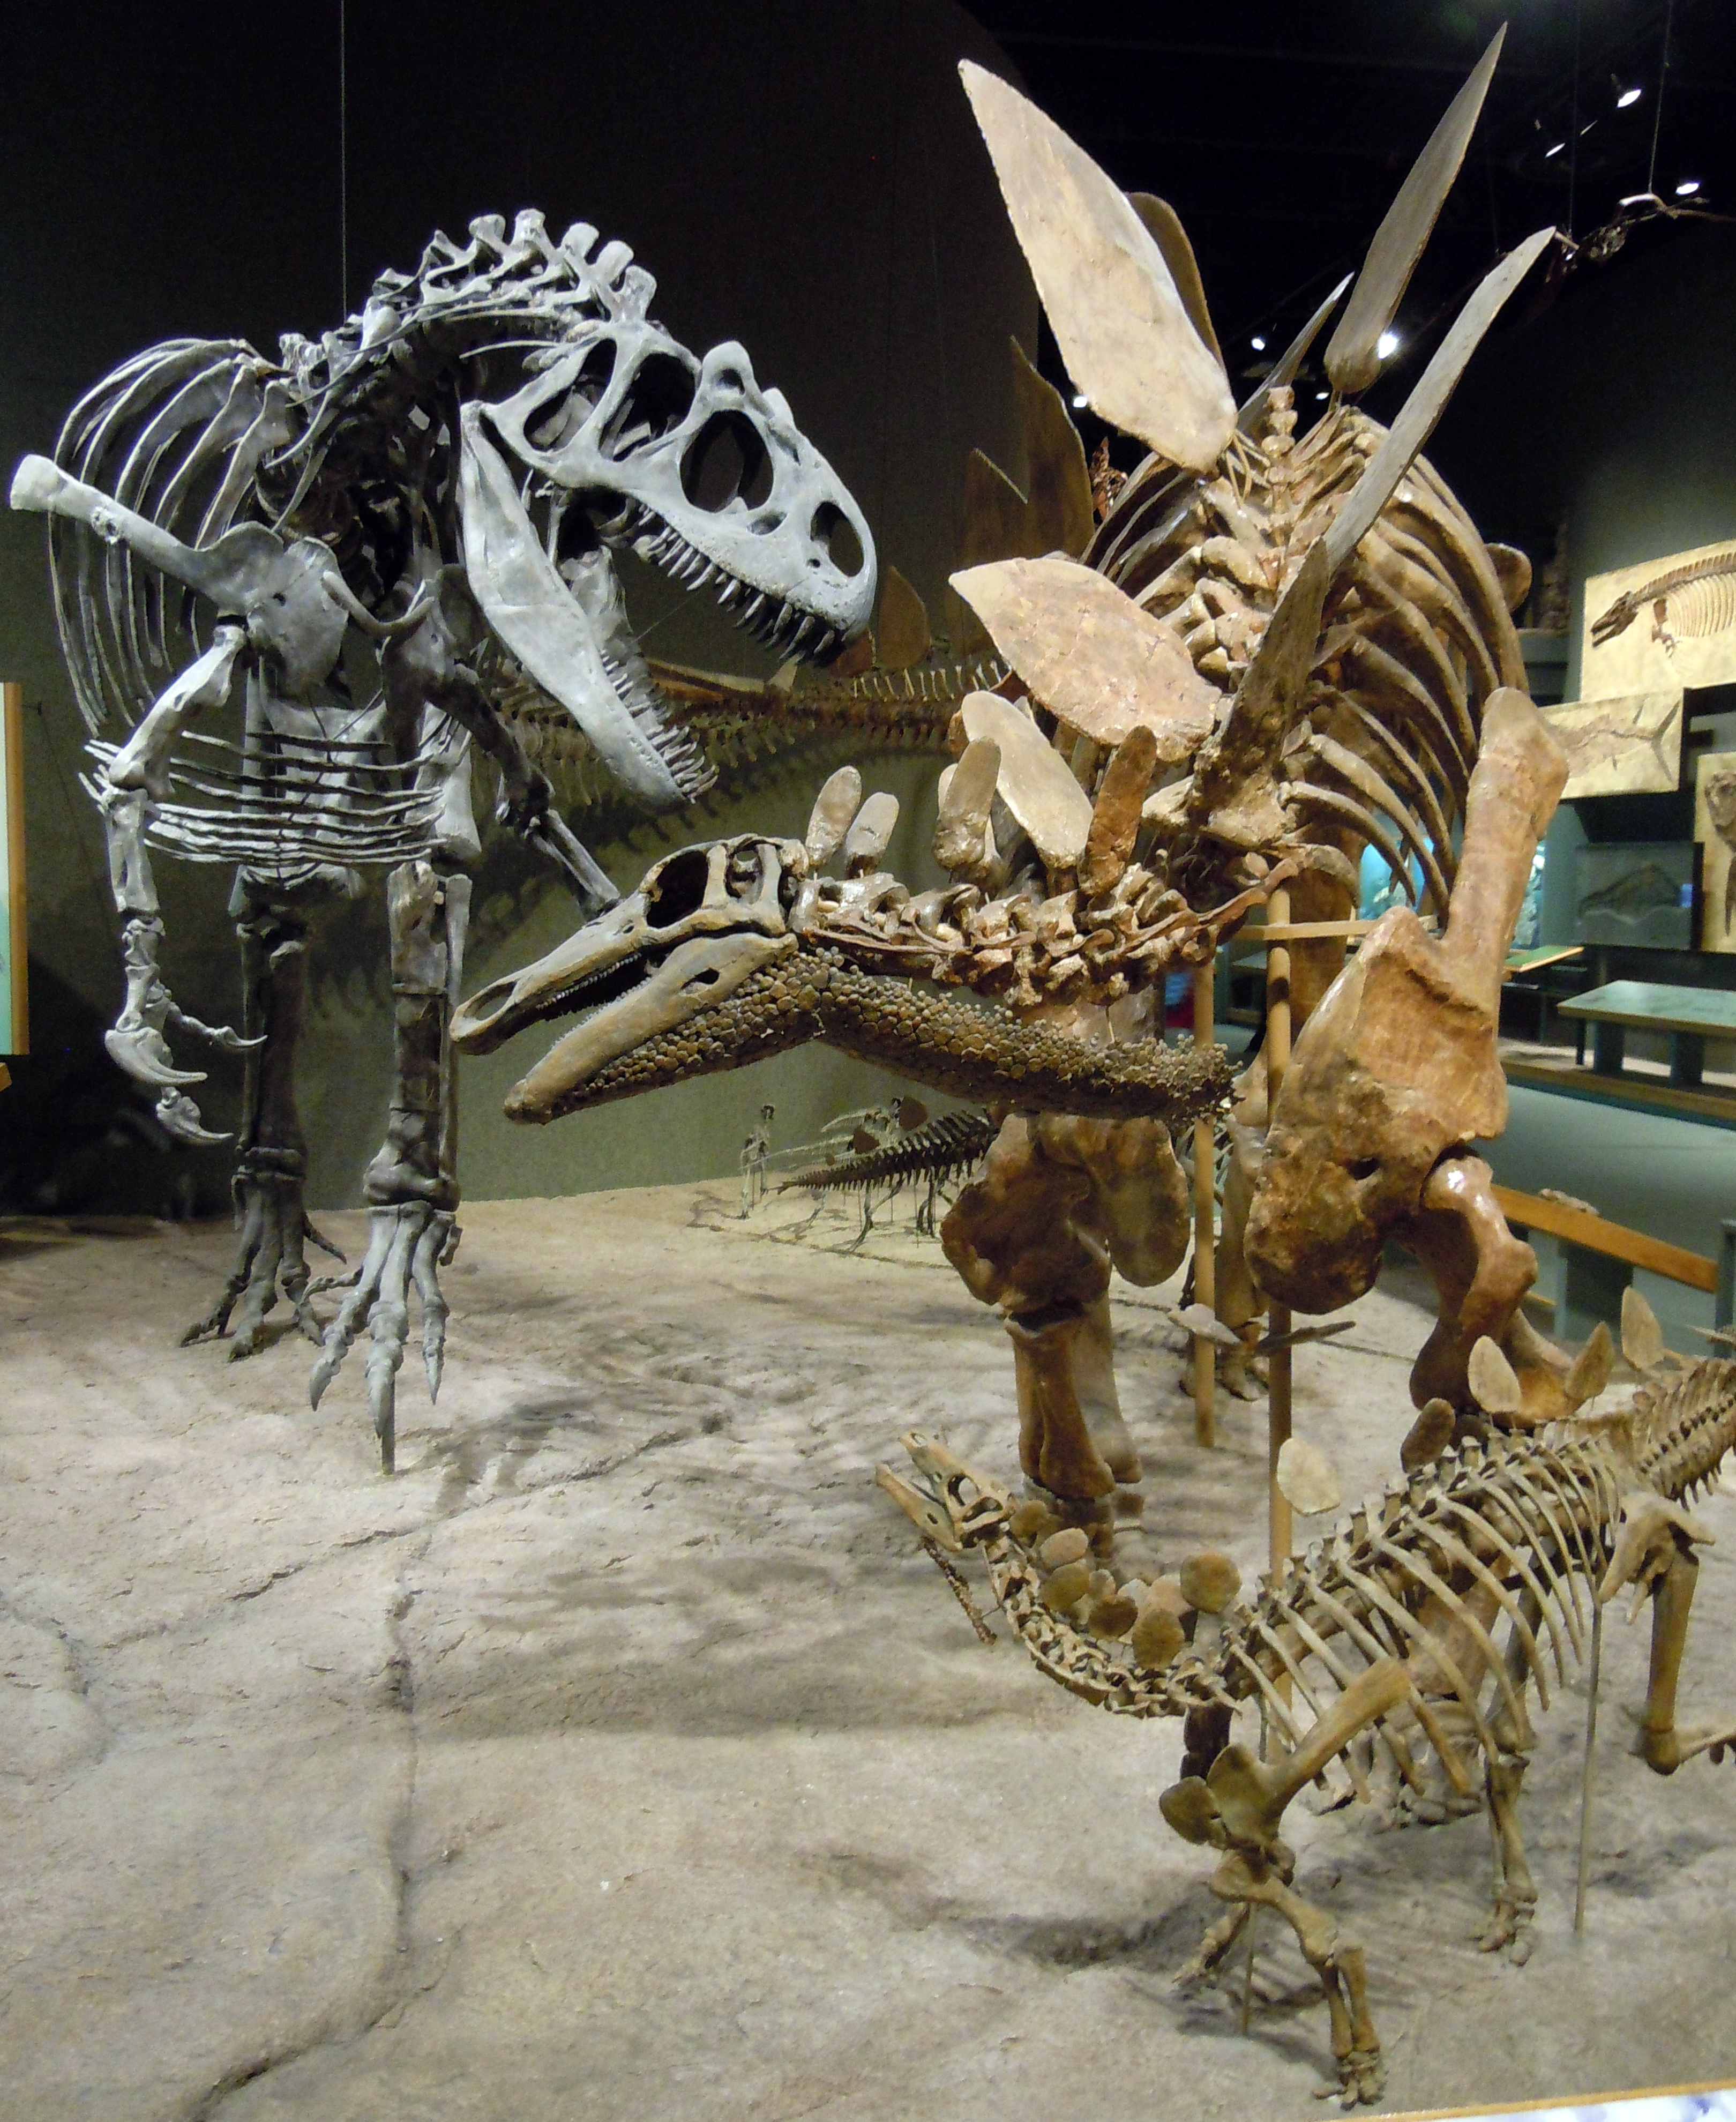 The Denver Museum of Nature and Science is a treasured landmark of the city and boasts more than , sq. ft. of award-winning wildlife dioramas, gems Location: Colorado Blvd, Denver,